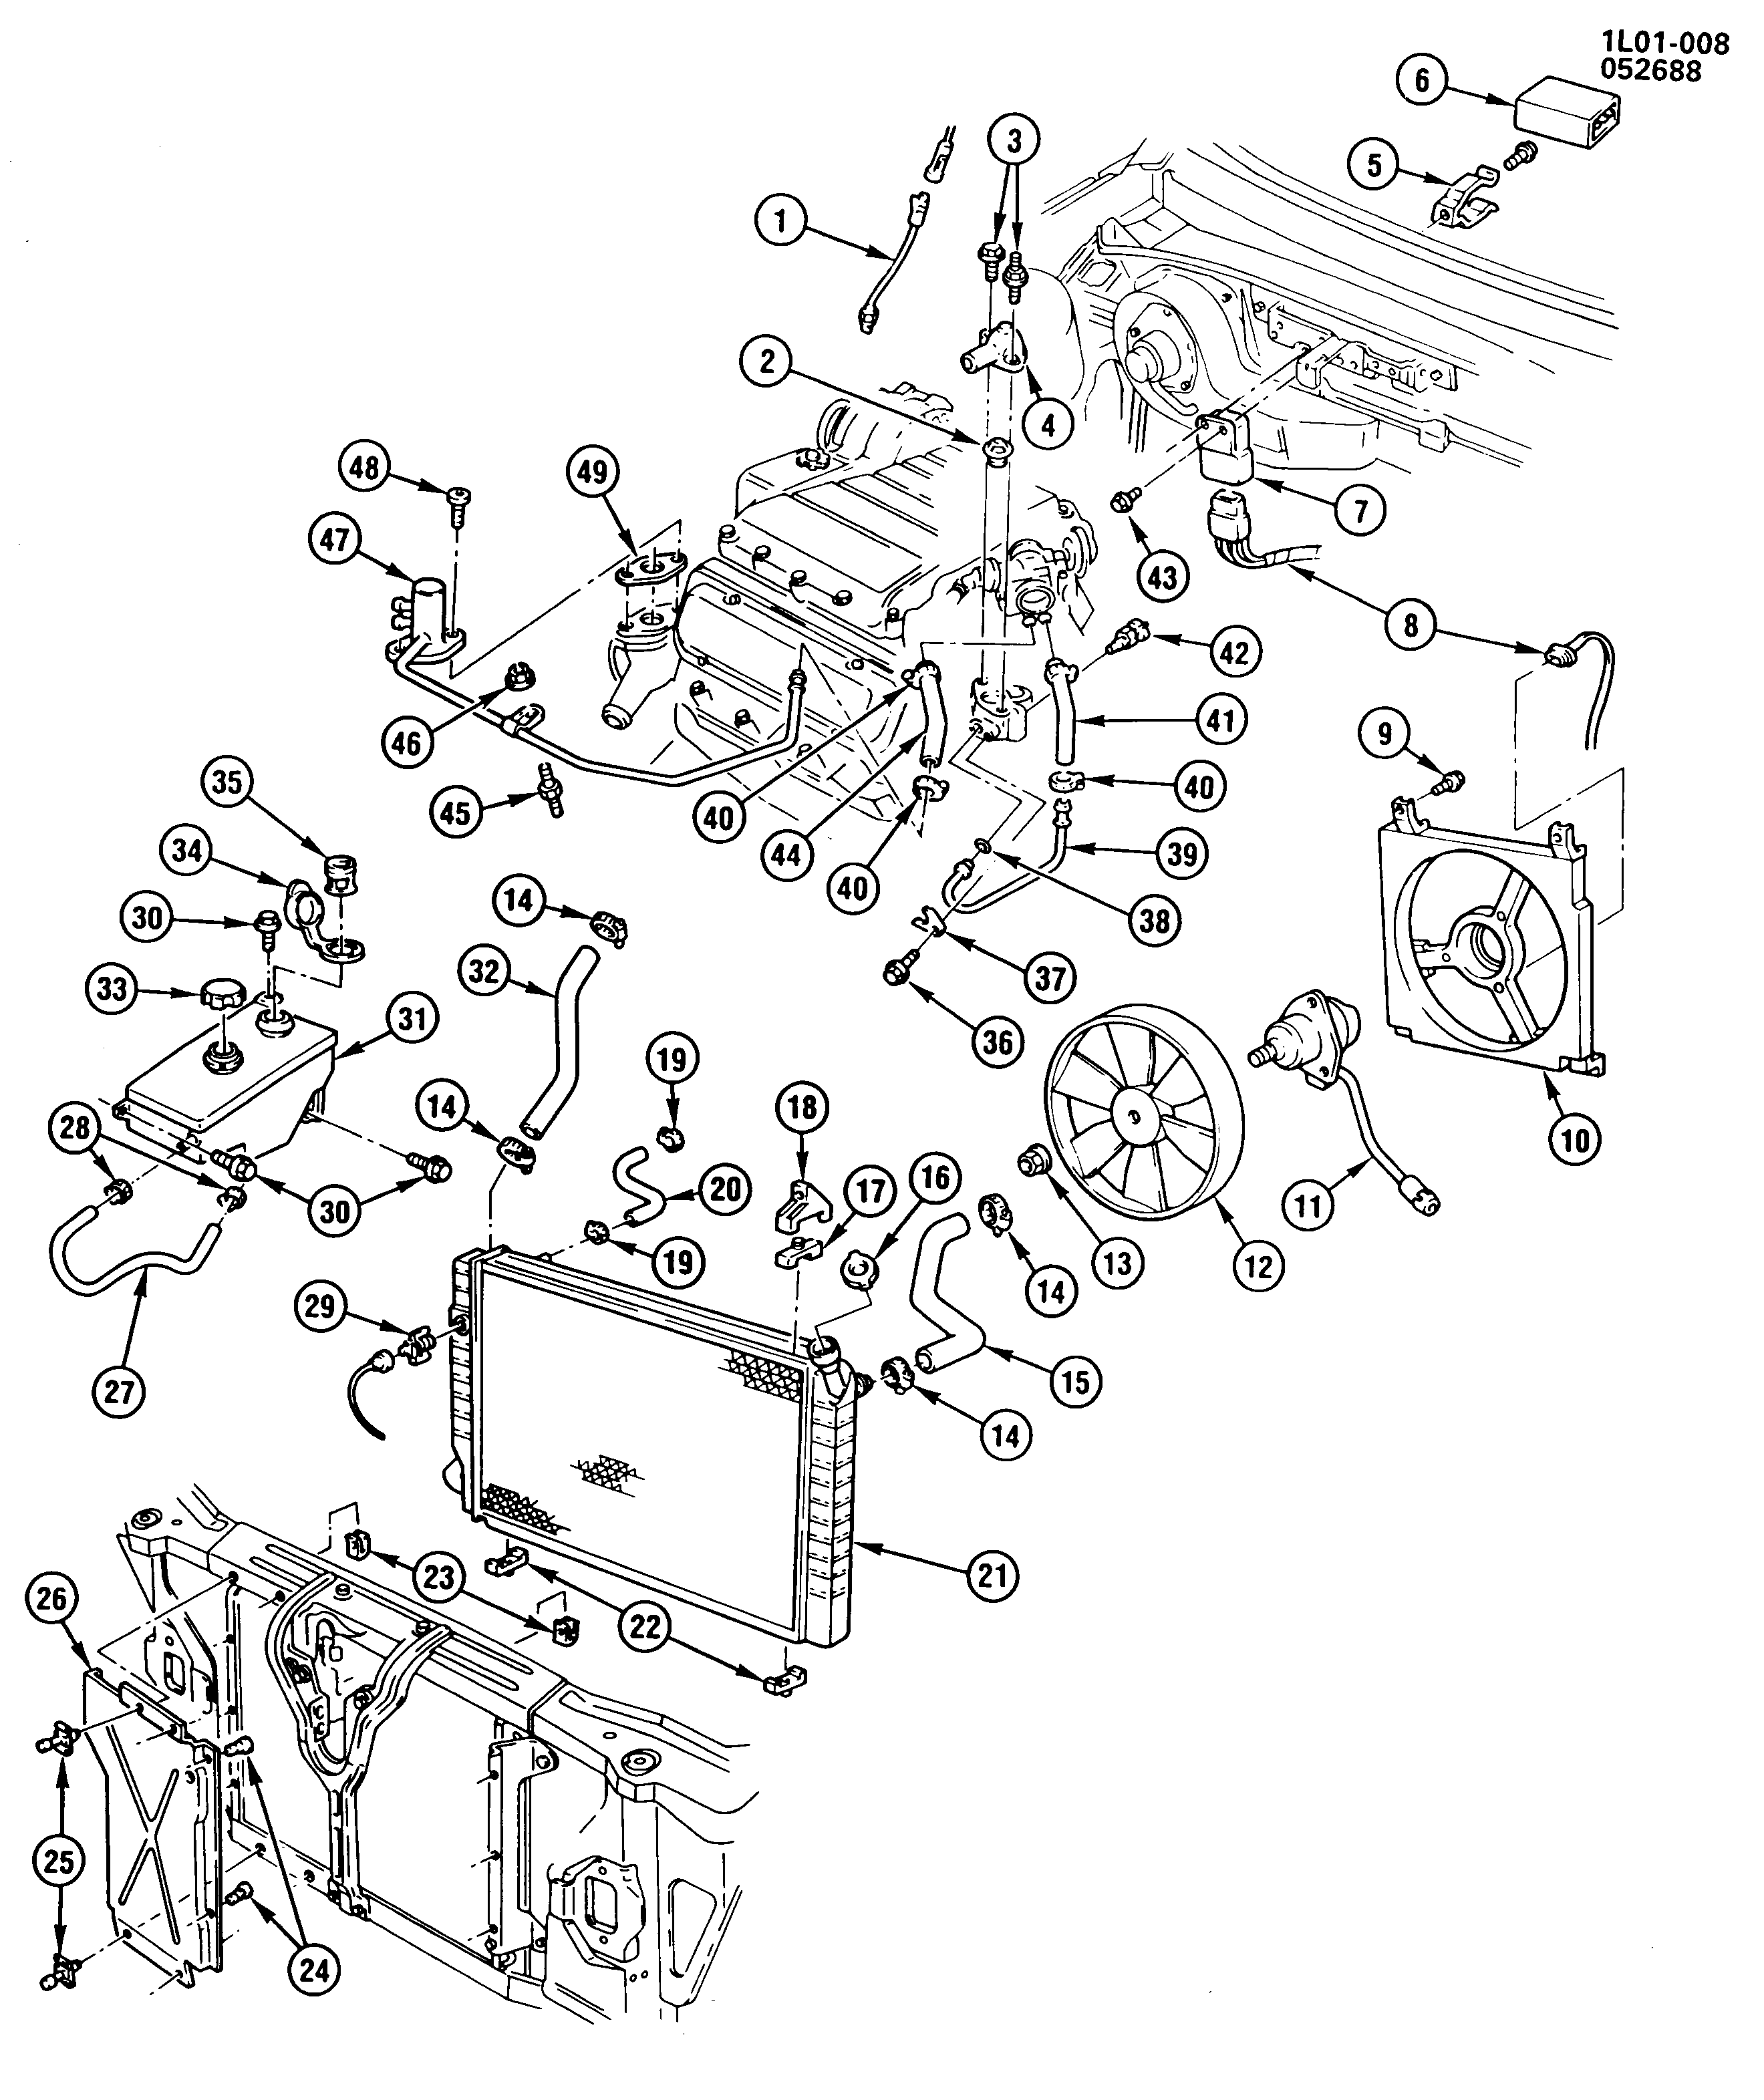 Chevy S10 Wiring Diagram In Addition 1986 Chevy Truck Wiring Diagram